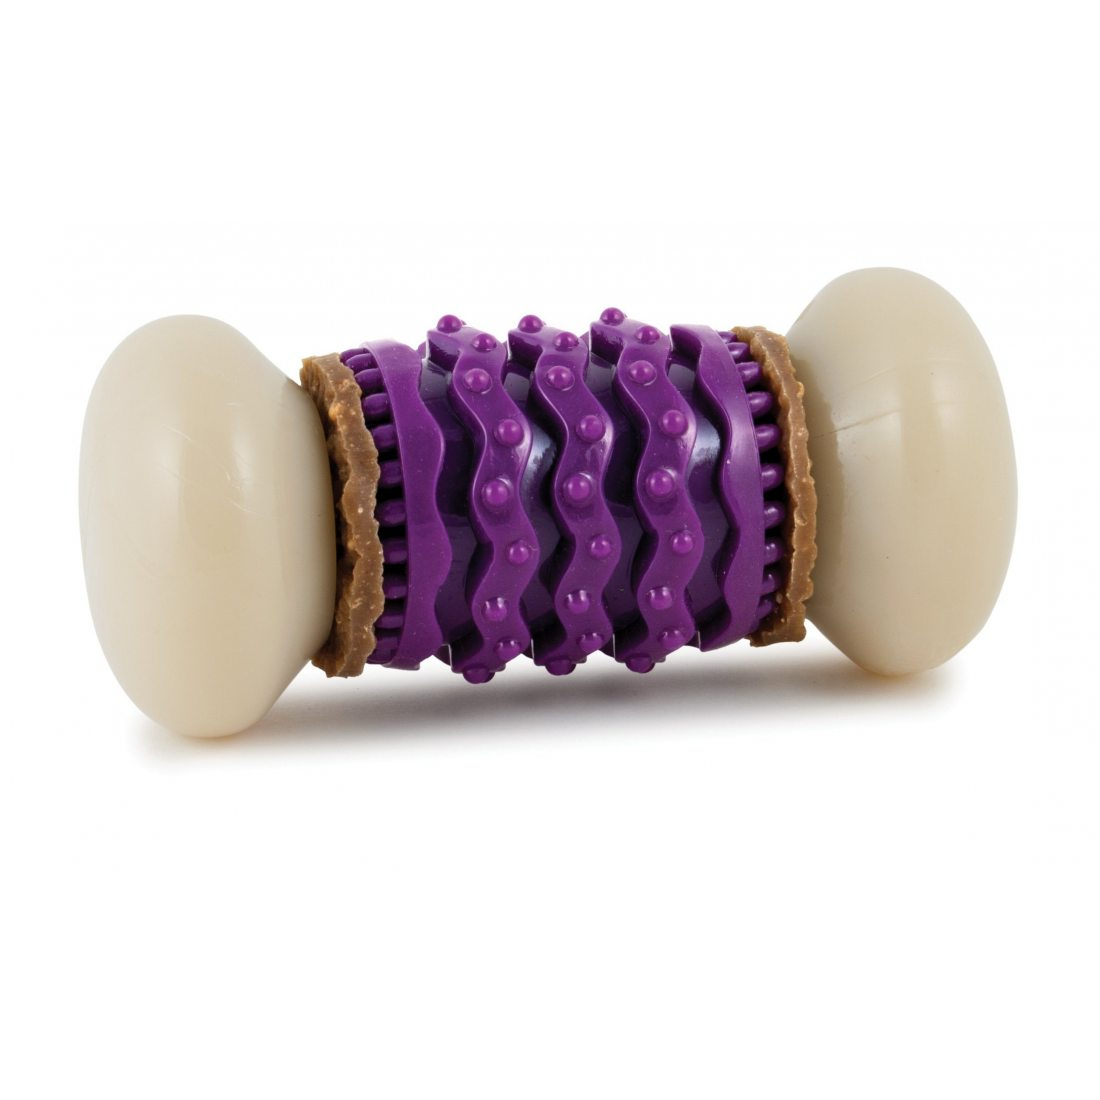 Petsafe Busy Buddy Nobbly Nubbly Jouet pour Chien Taille M